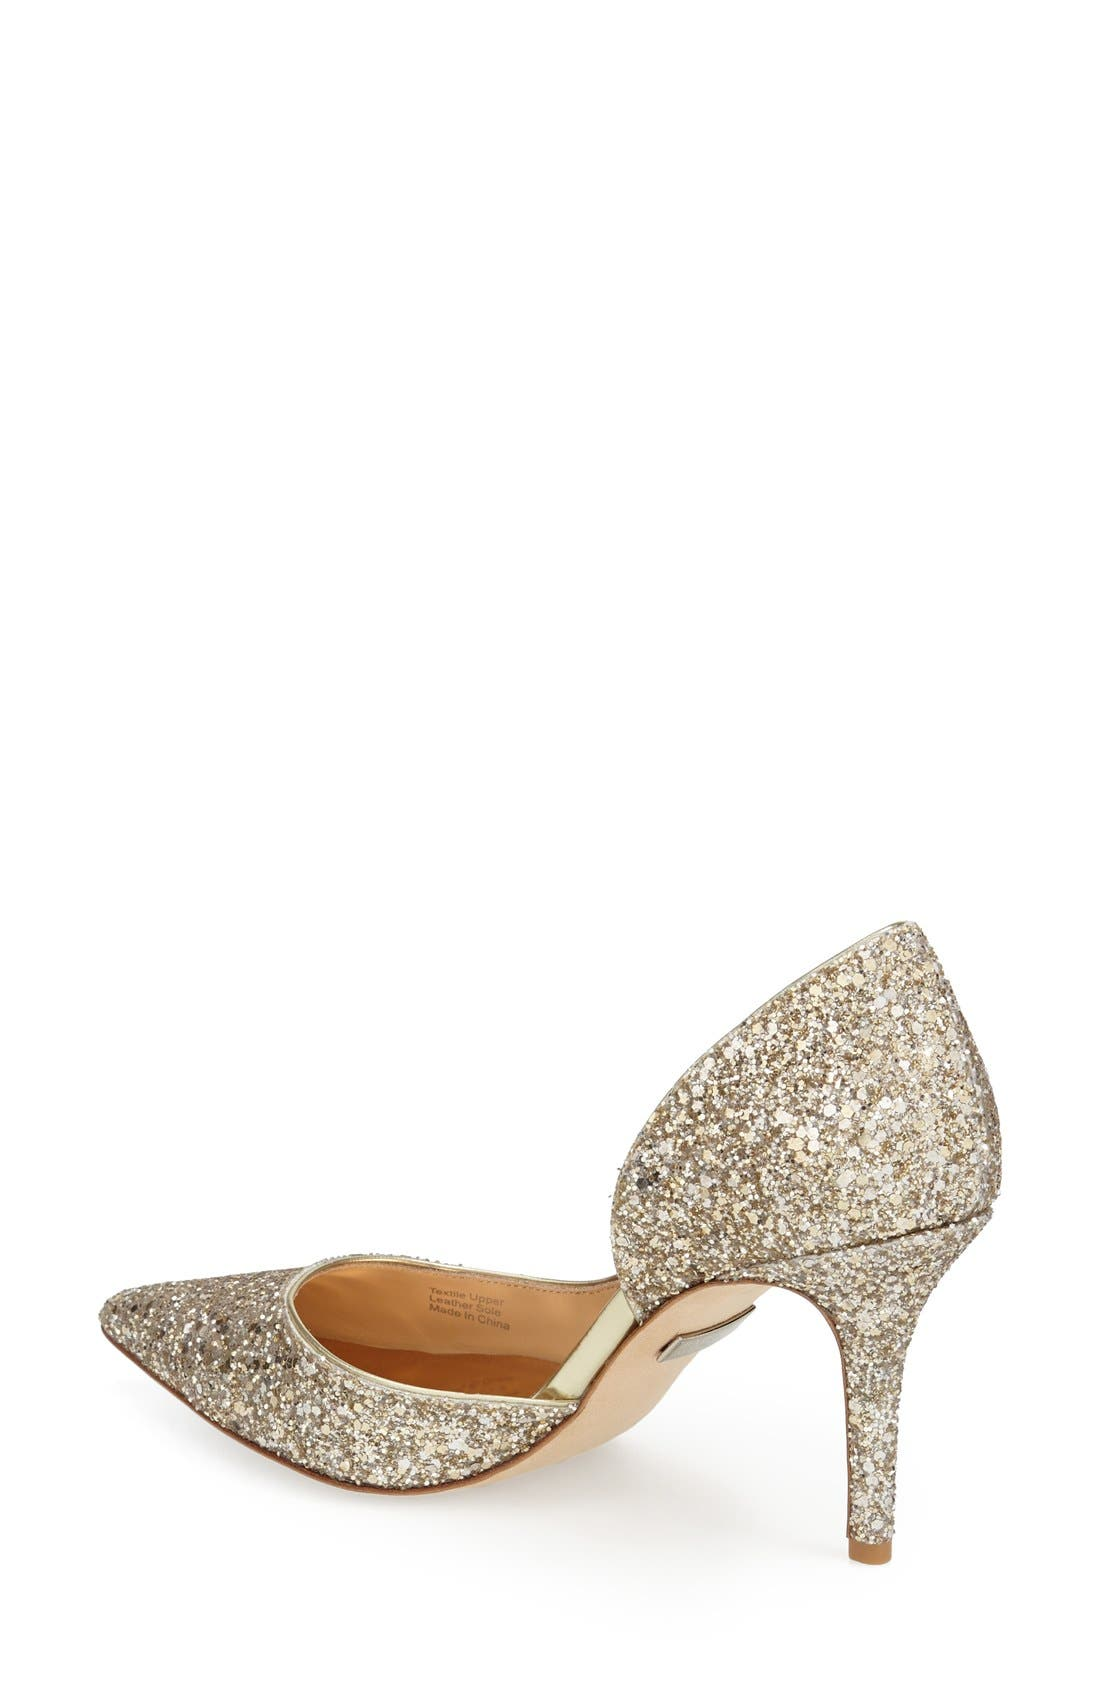 'Daisy' Embellished Pointy Toe Pump,                             Alternate thumbnail 3, color,                             PLATINO GLITTER FABRIC